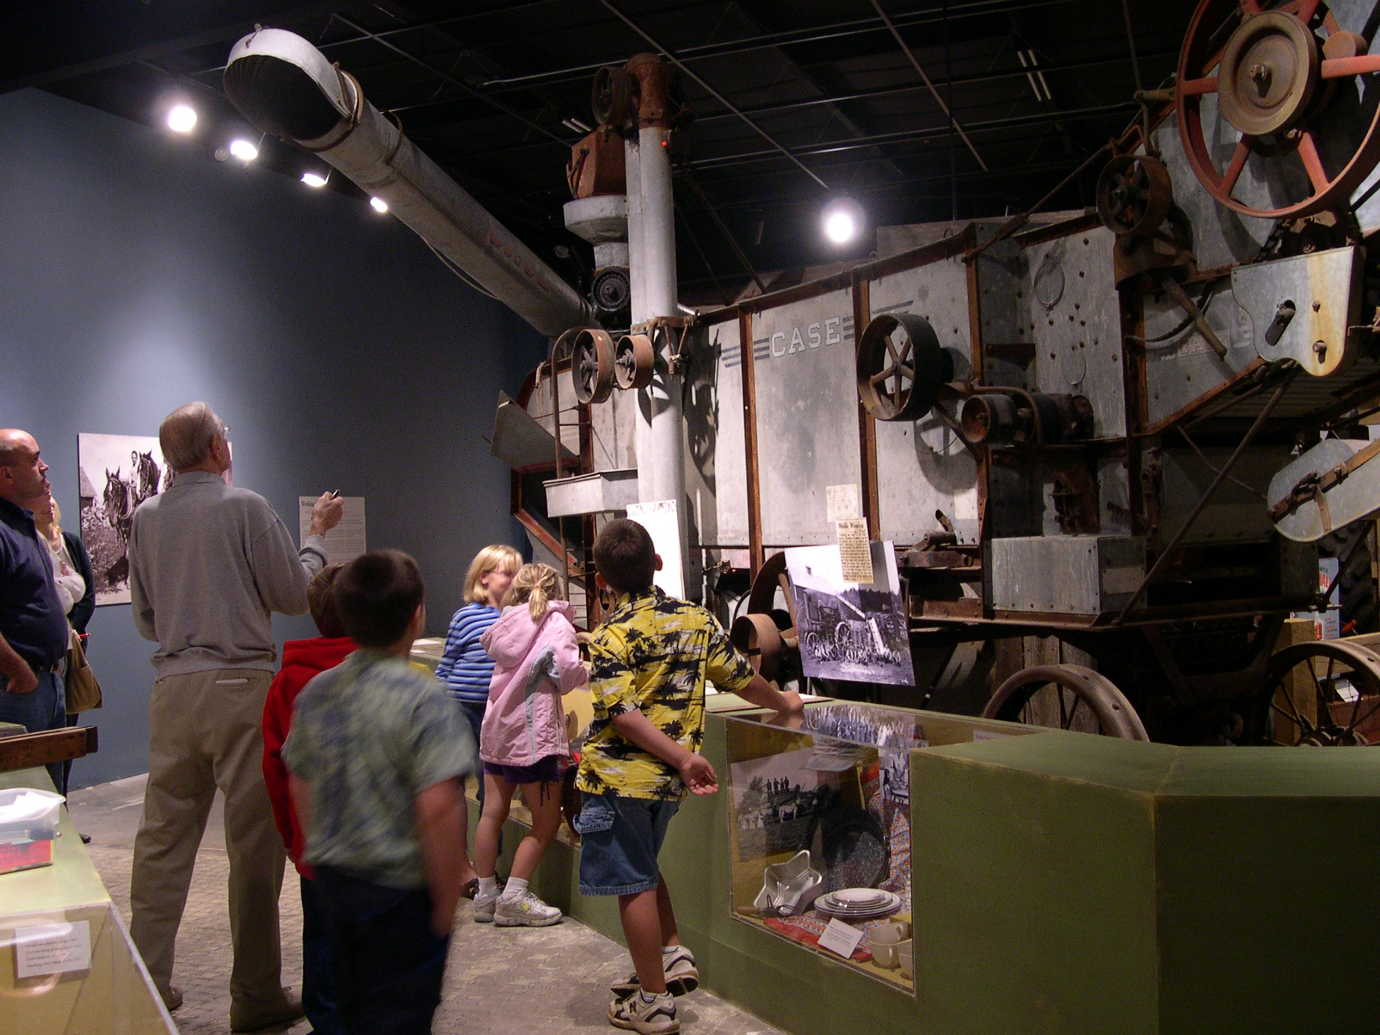 The *Farm Life* exhibition allows visitors to explore agriculture in the Chippewa Valley. Image courtesy of the Chippewa Valley Museum.